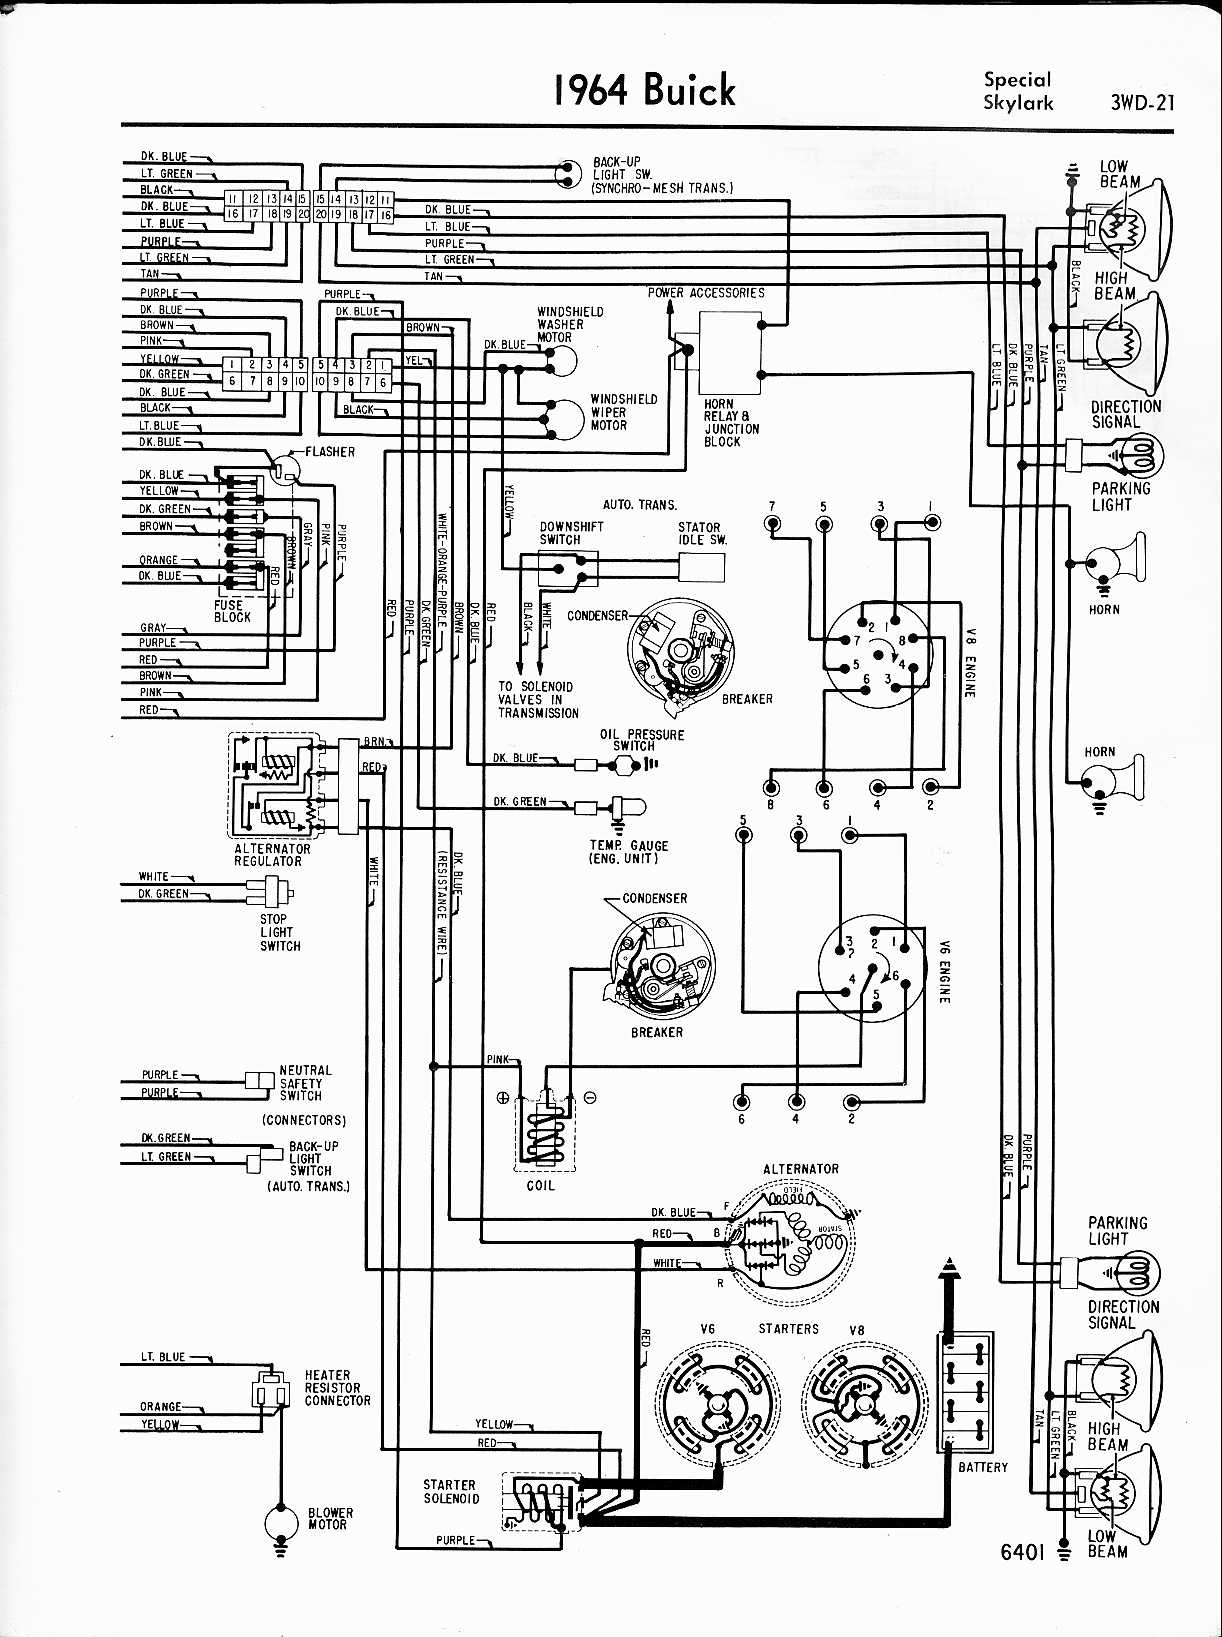 buick wiring diagrams 1957 1965 hyundai xg350 wiring diagram free picture schematic 65 riviera wiring diagram free picture schematic